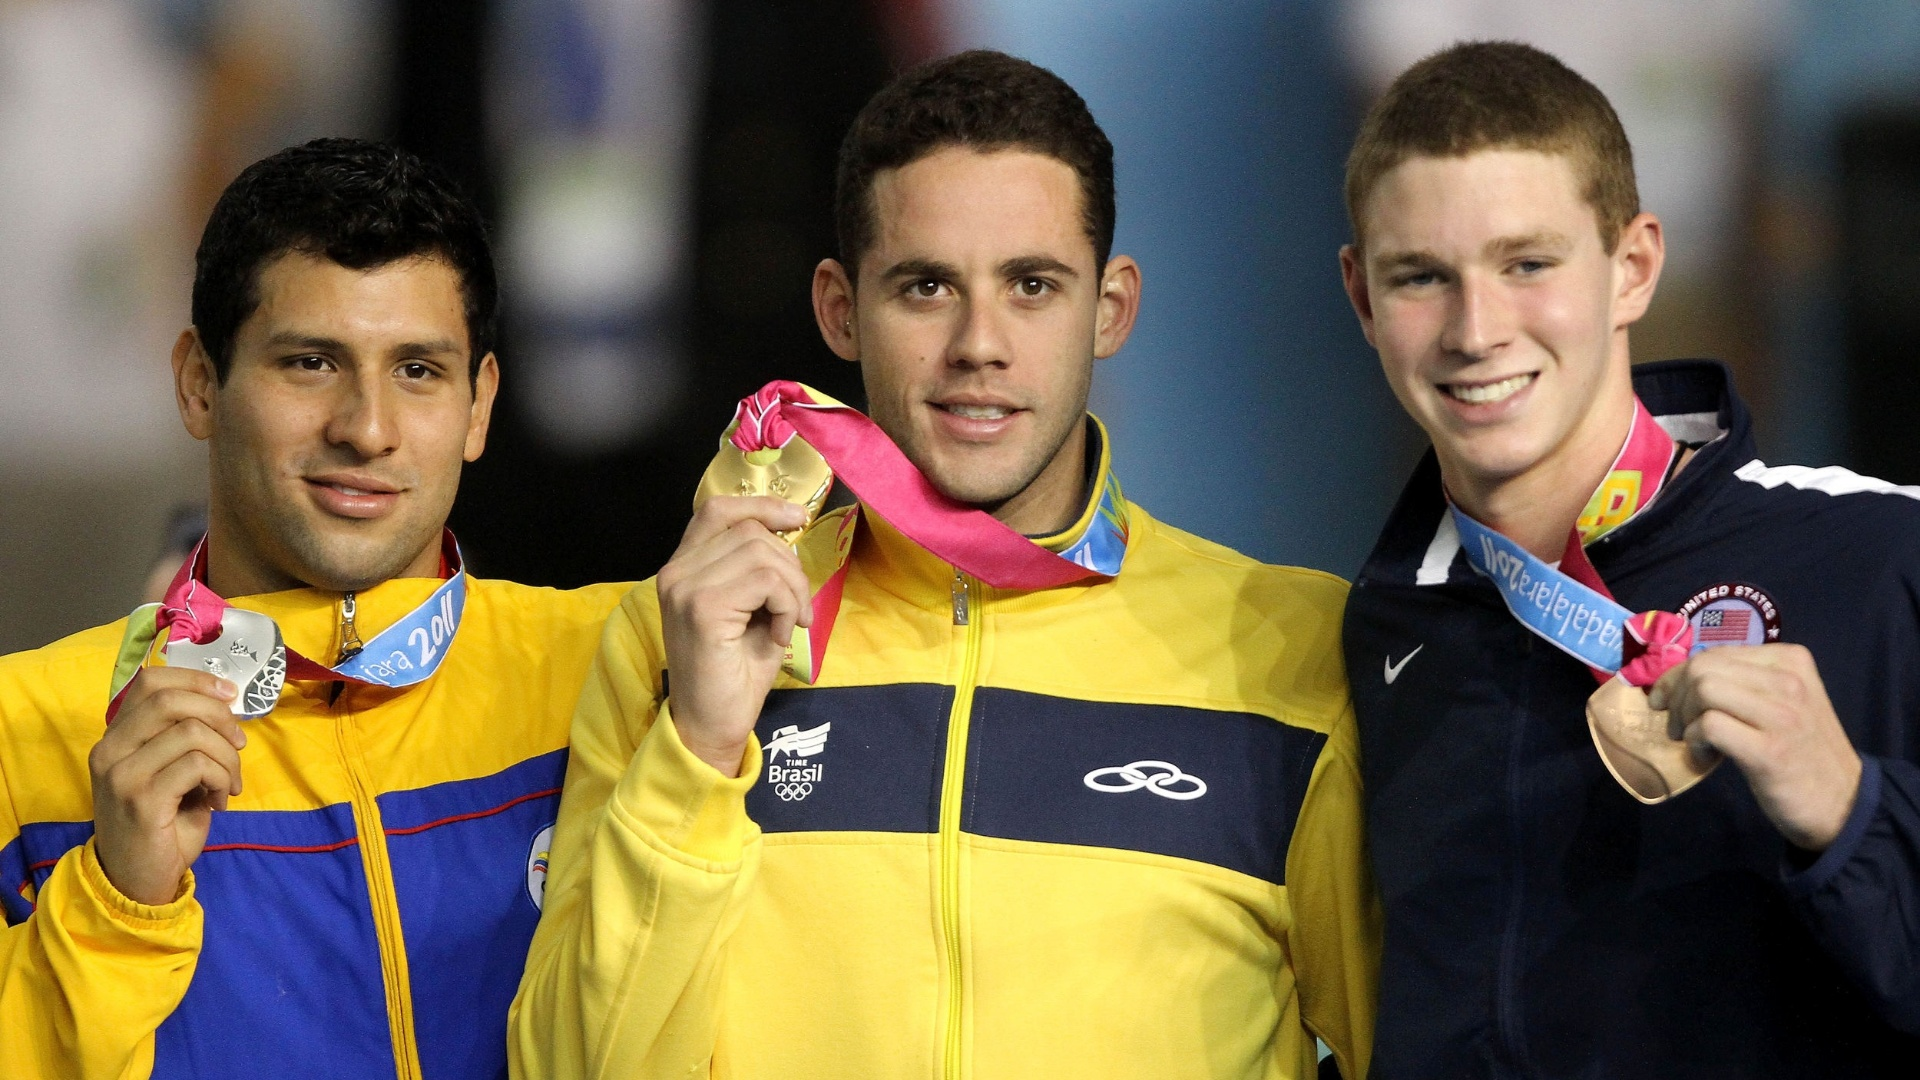 Thiago Pereira ganhou o ouro nos 200 m costas em Guadalajara (21/10/2011)